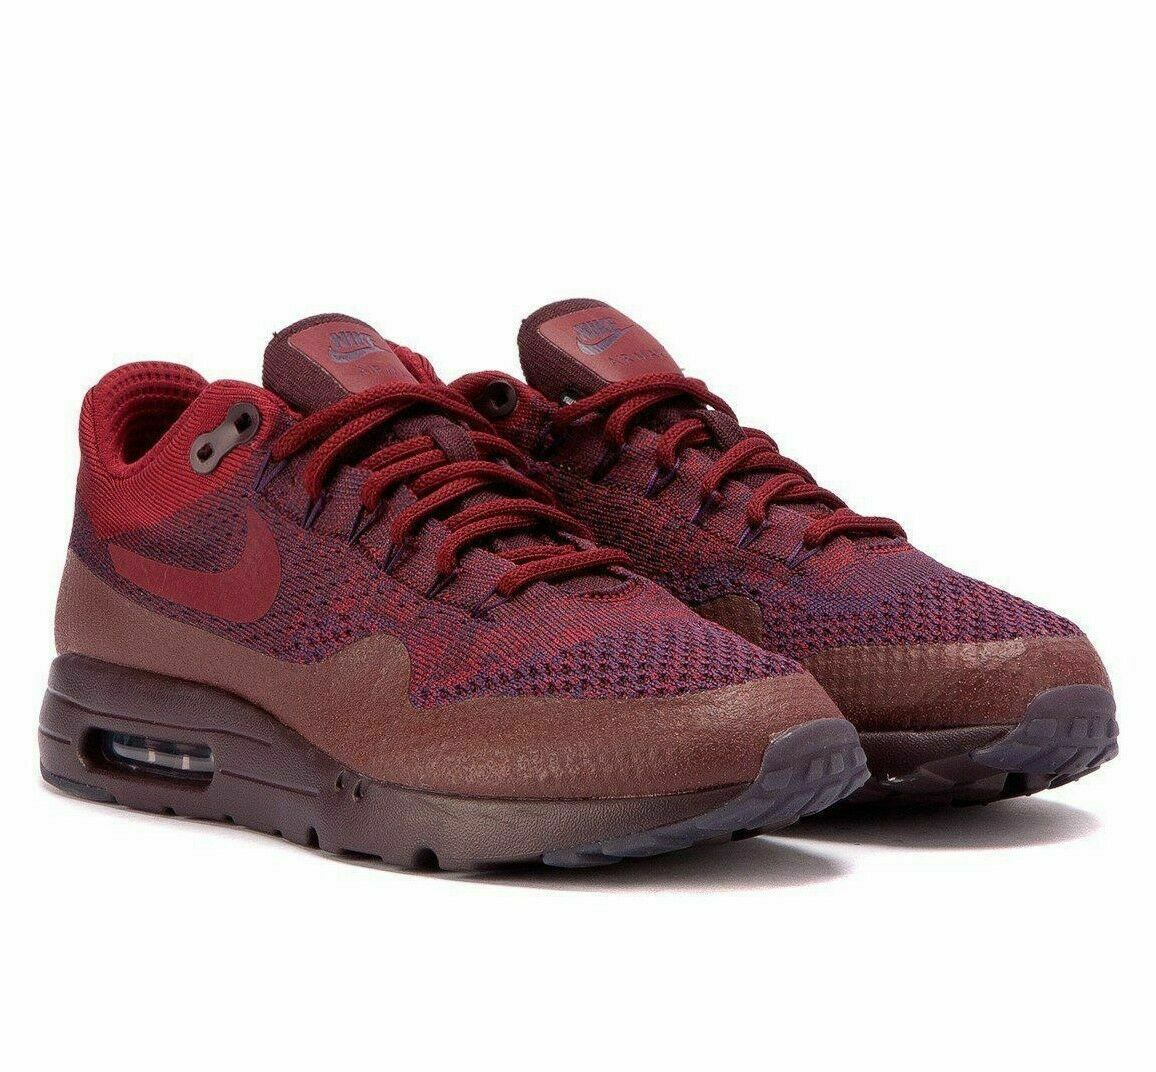 Nike Mens Air Max 1 Ultra Flyknit Shoes 856958 566 Grand Purple Size 14